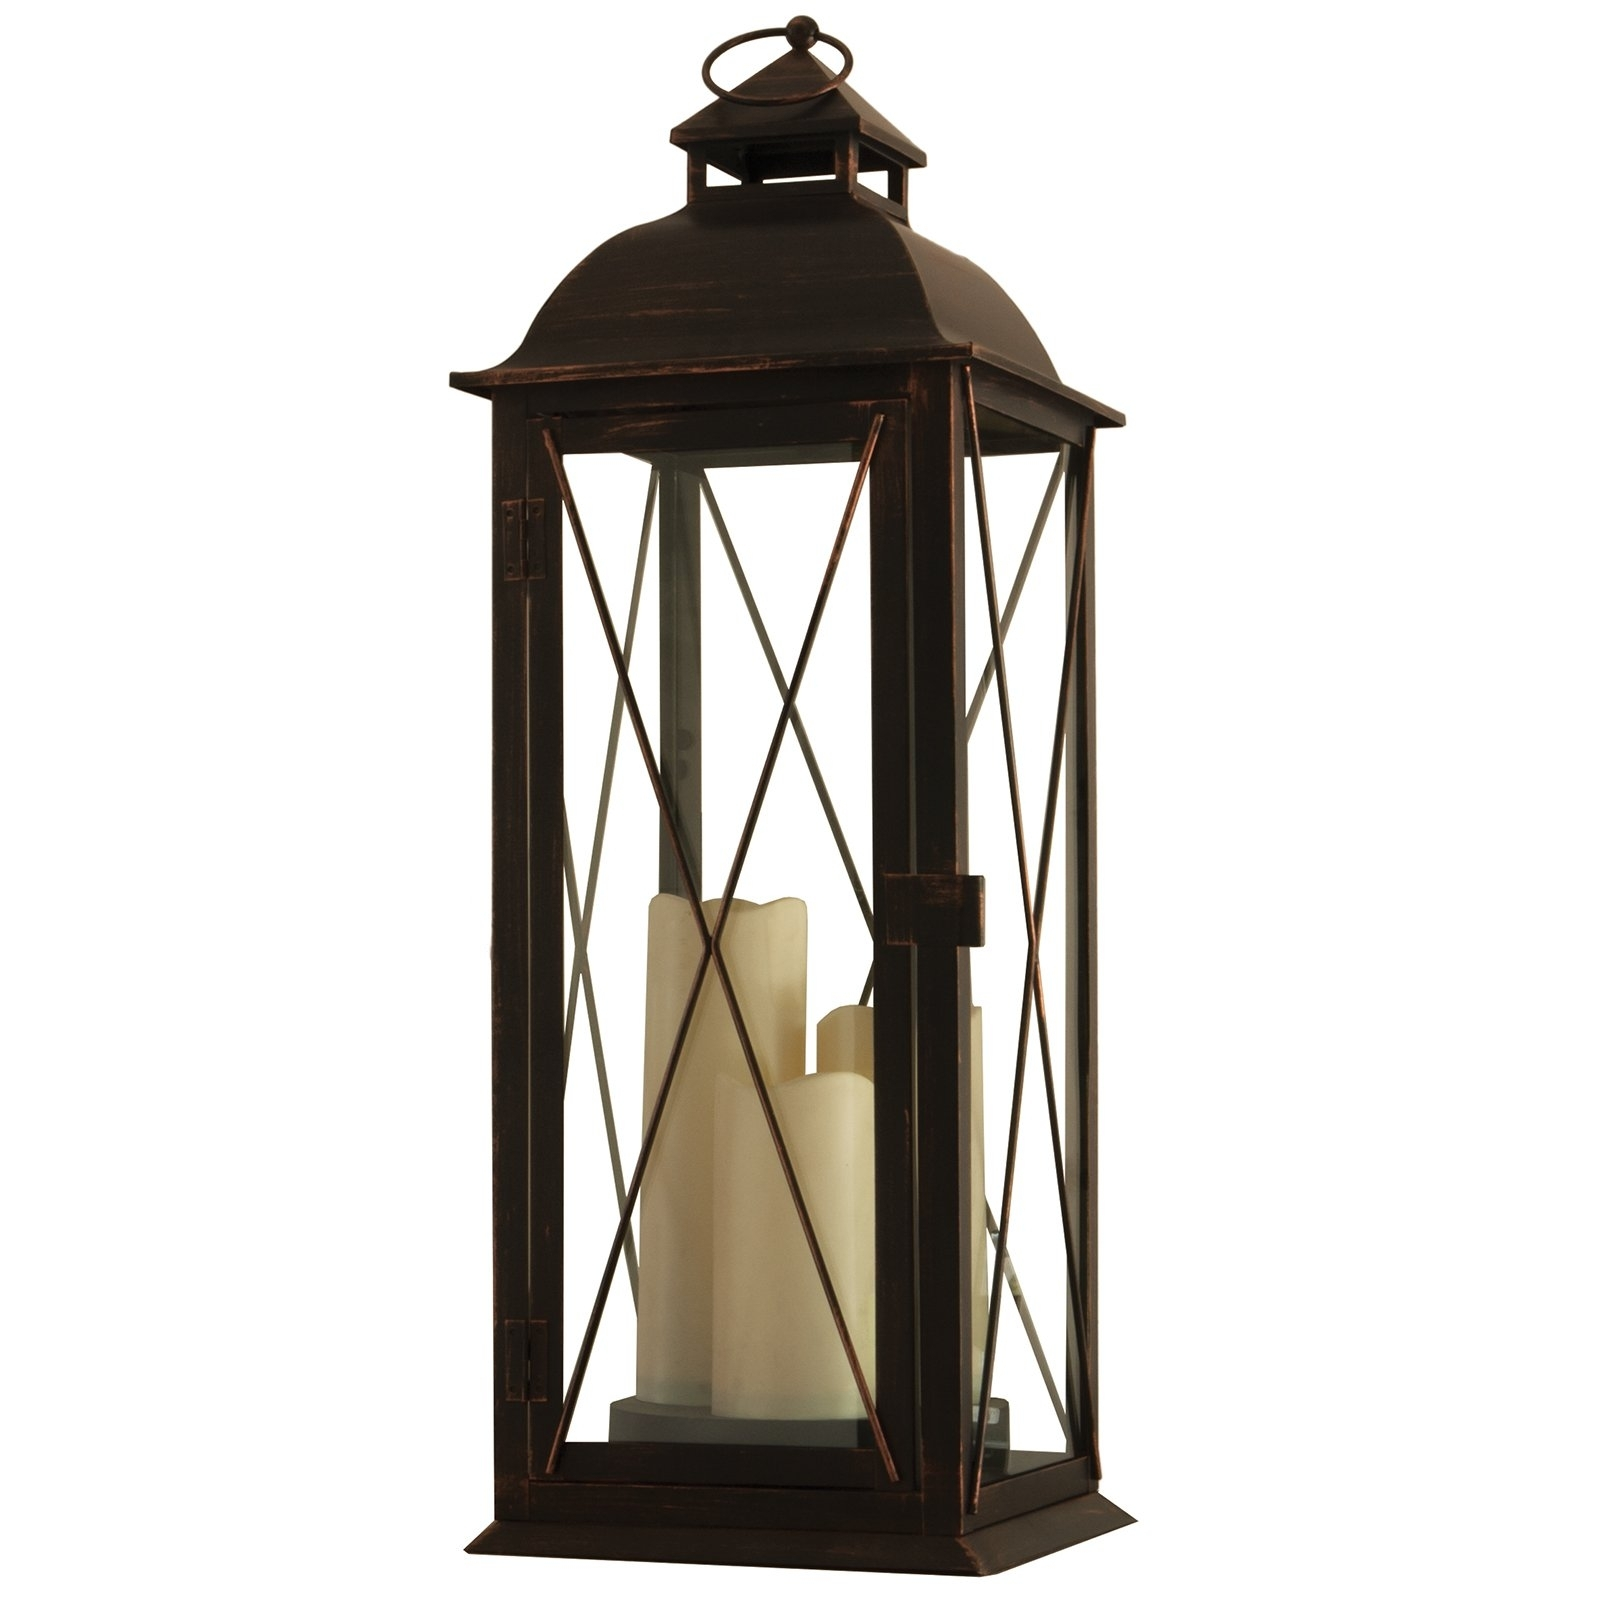 Smart Design Salerno Triple Candle Led Lantern W/ On Off Timer With Regard To Outdoor Timer Lanterns (View 10 of 20)